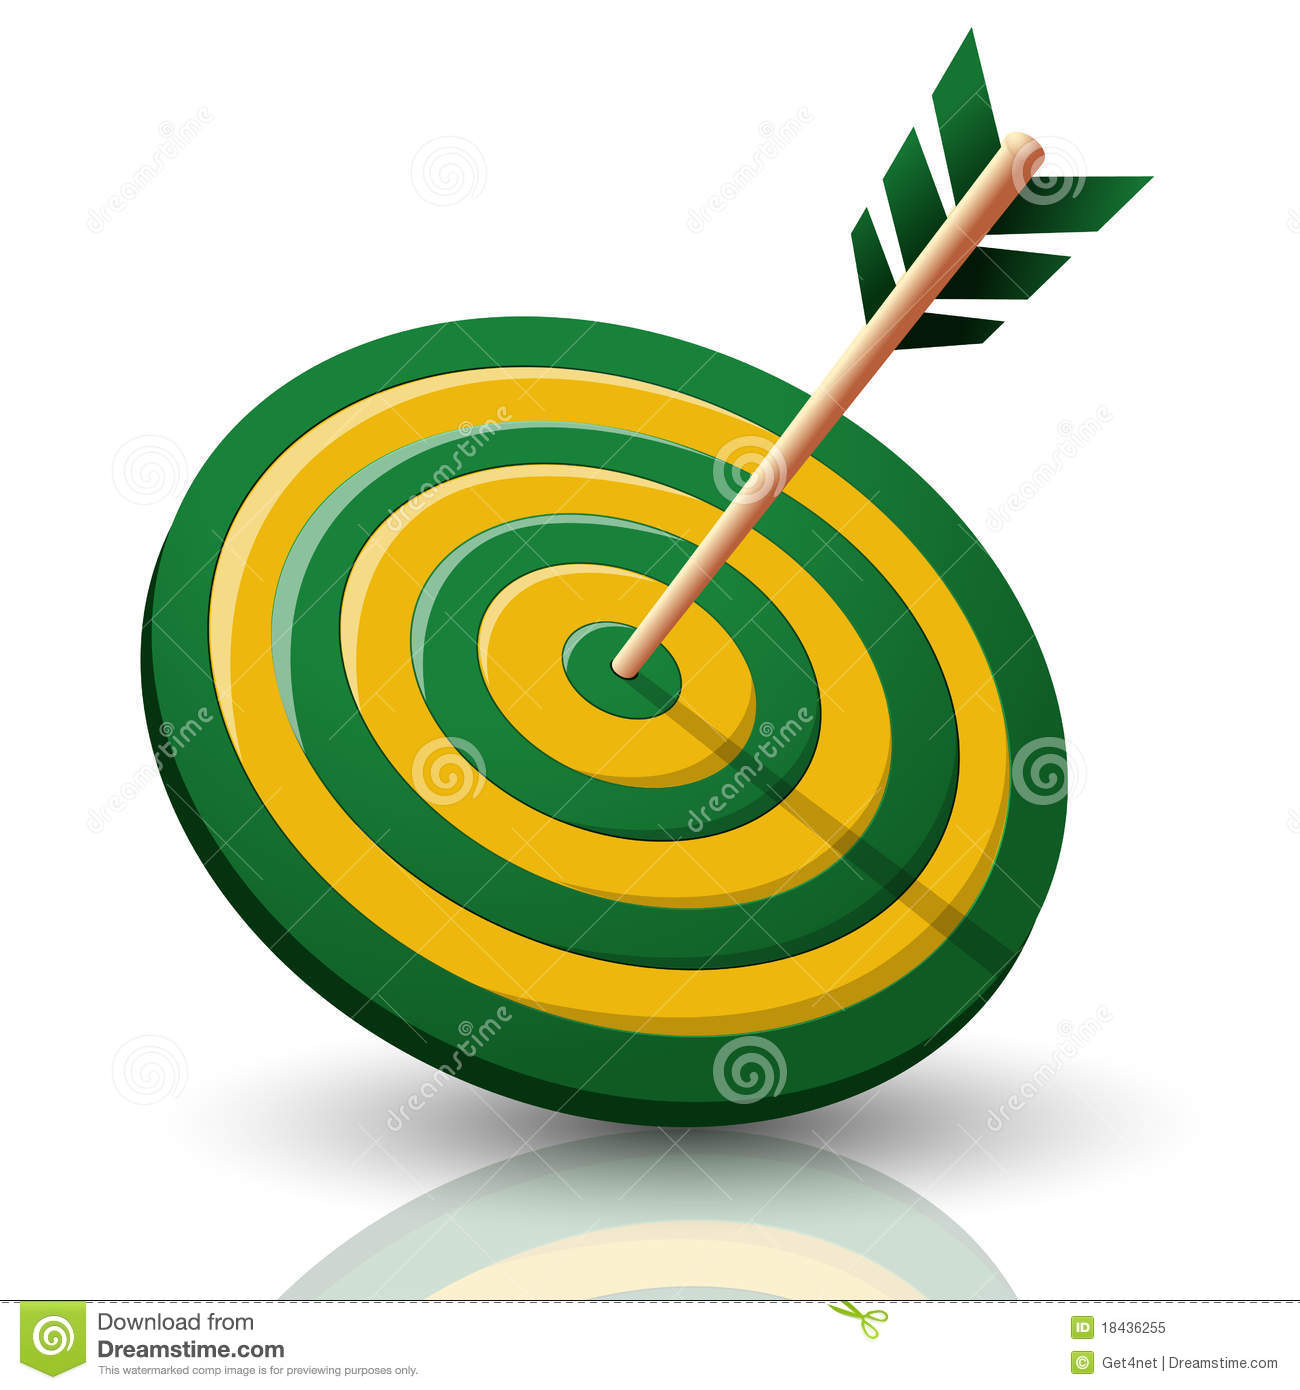 Target Board With Arrow Royalty Free Stock Photo - Image: 18436255